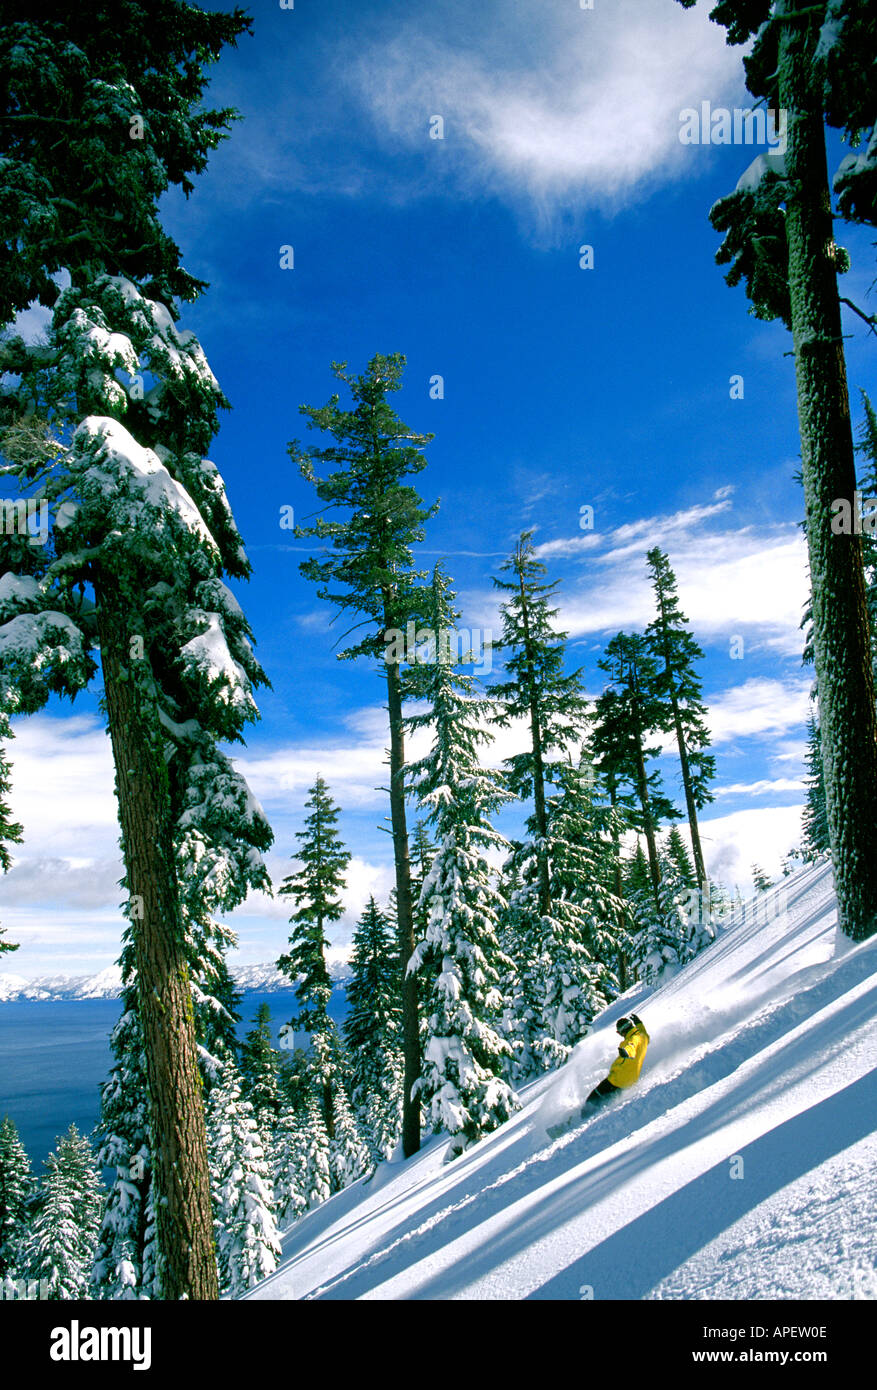 Offpiste snowboarder on slope in mountain woodland, Richard Stretch, Homewood, Tahoe Stock Photo